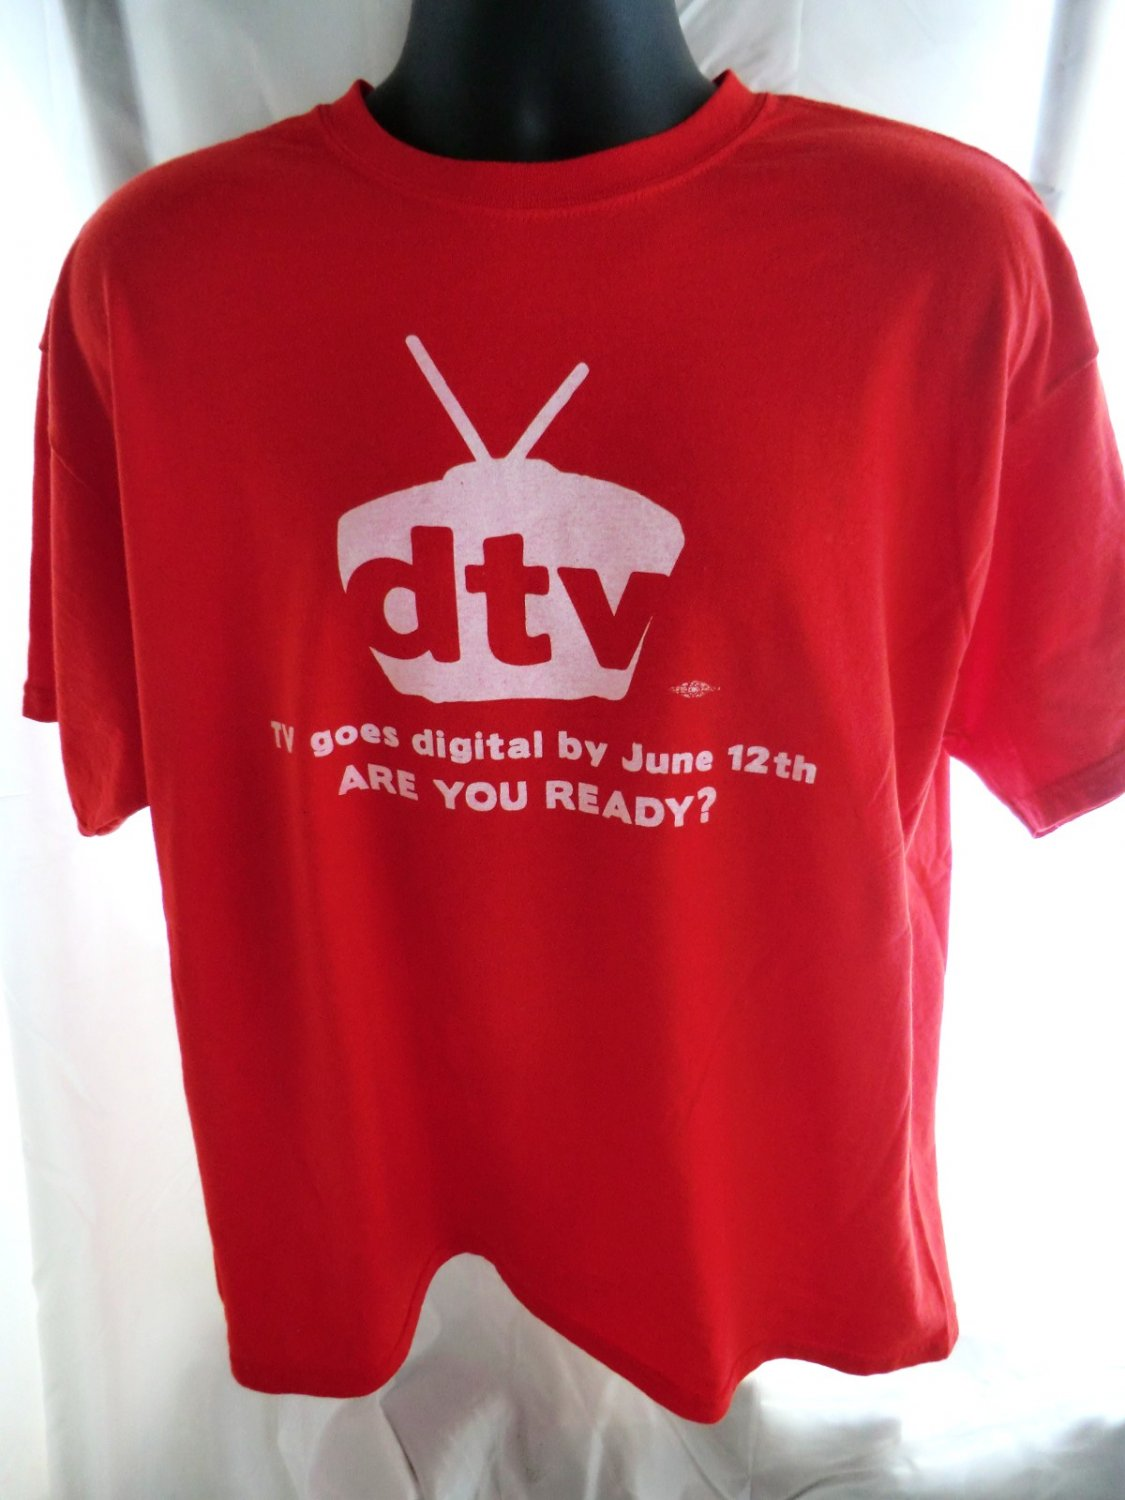 Government  DTV Are You Ready for Digital TV? Red T-Shirt, Size XL